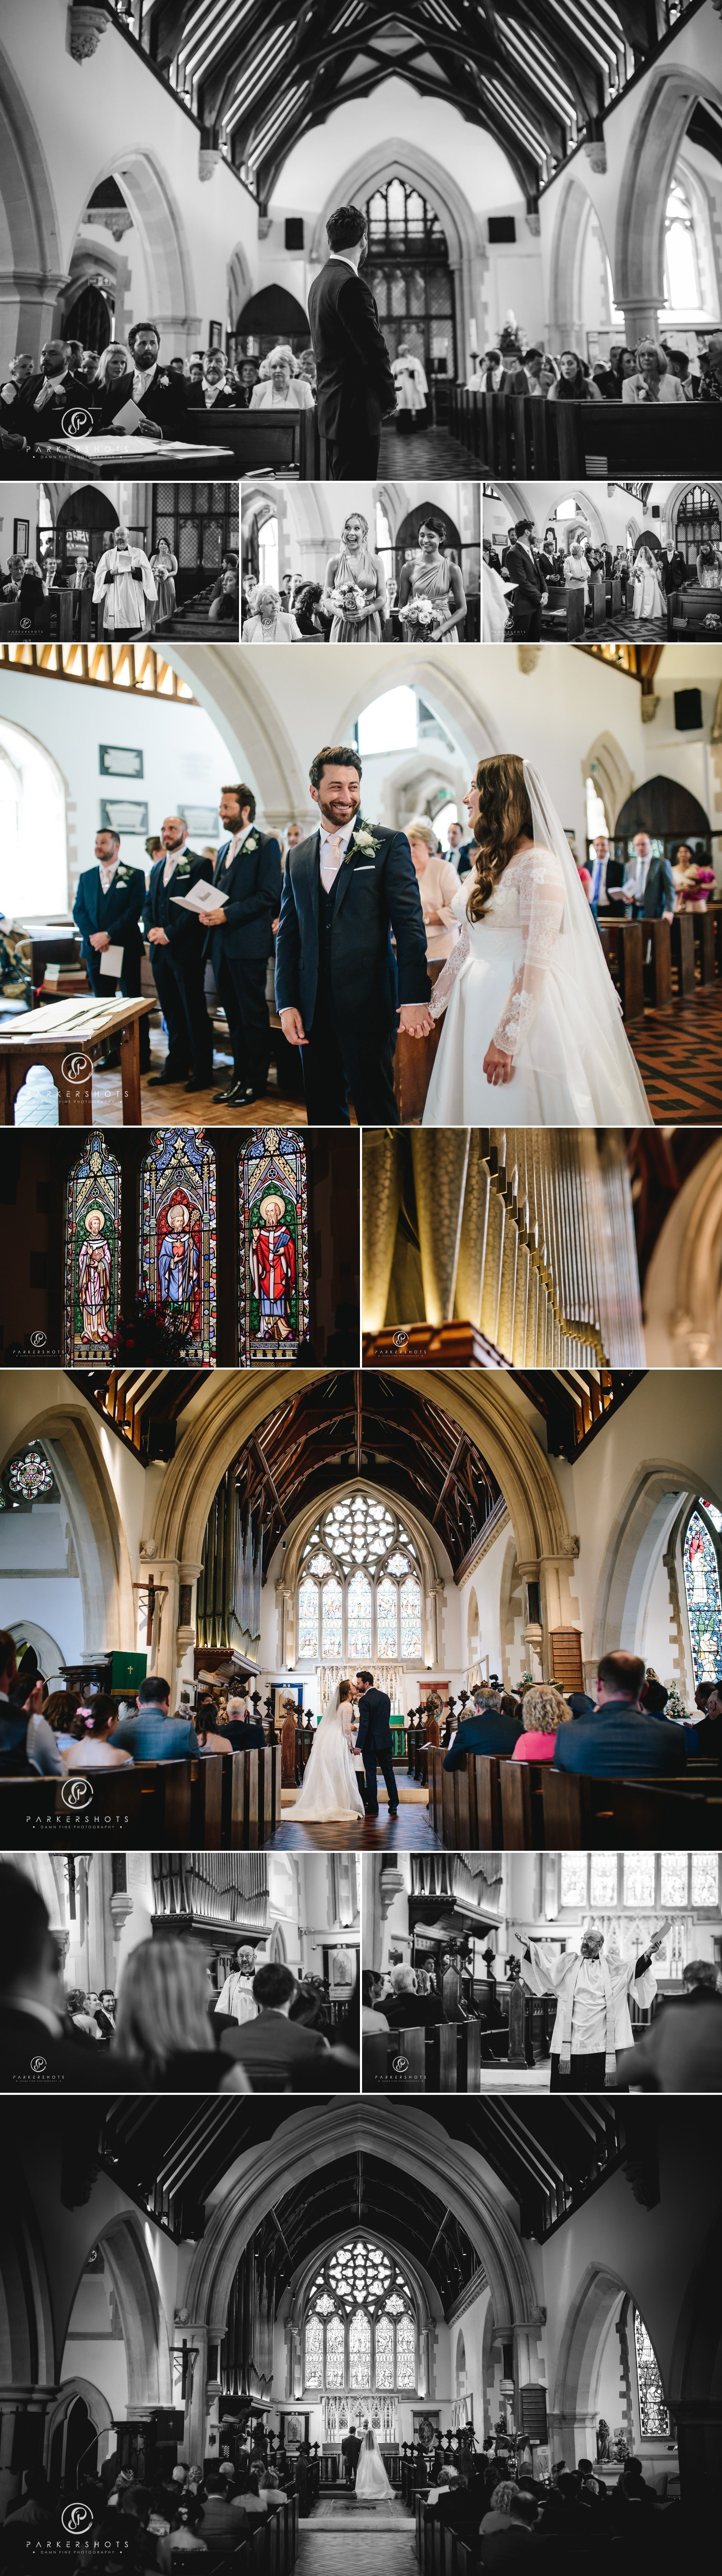 church ceremony by Wasing Park Wedding Photographer